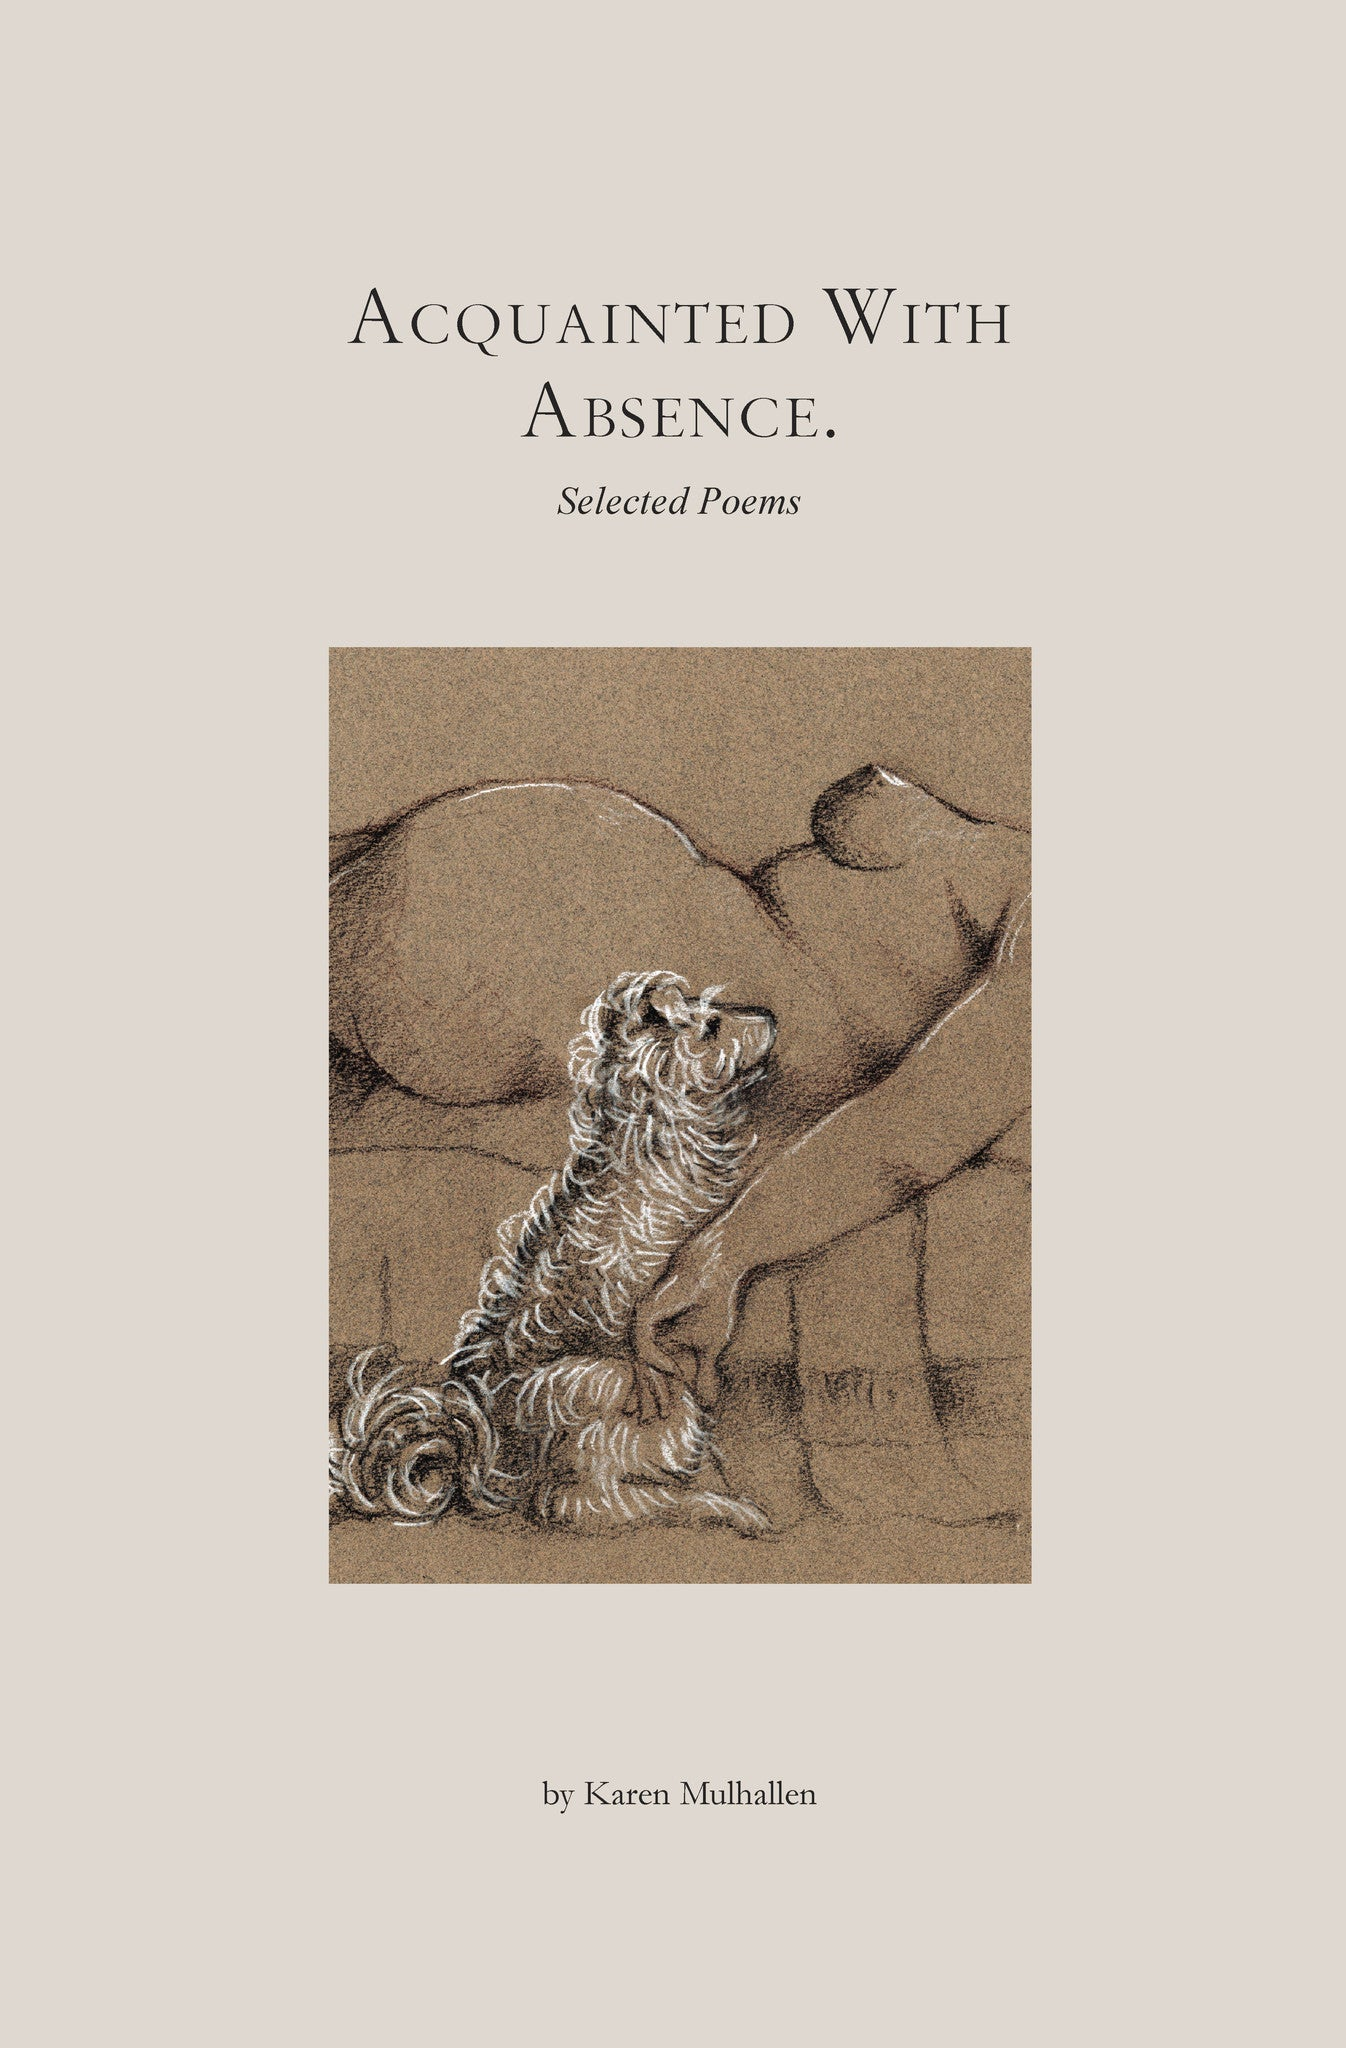 Acquainted With Absence: Selected Poems by Karen Mulhallen, edited by Douglas Glover